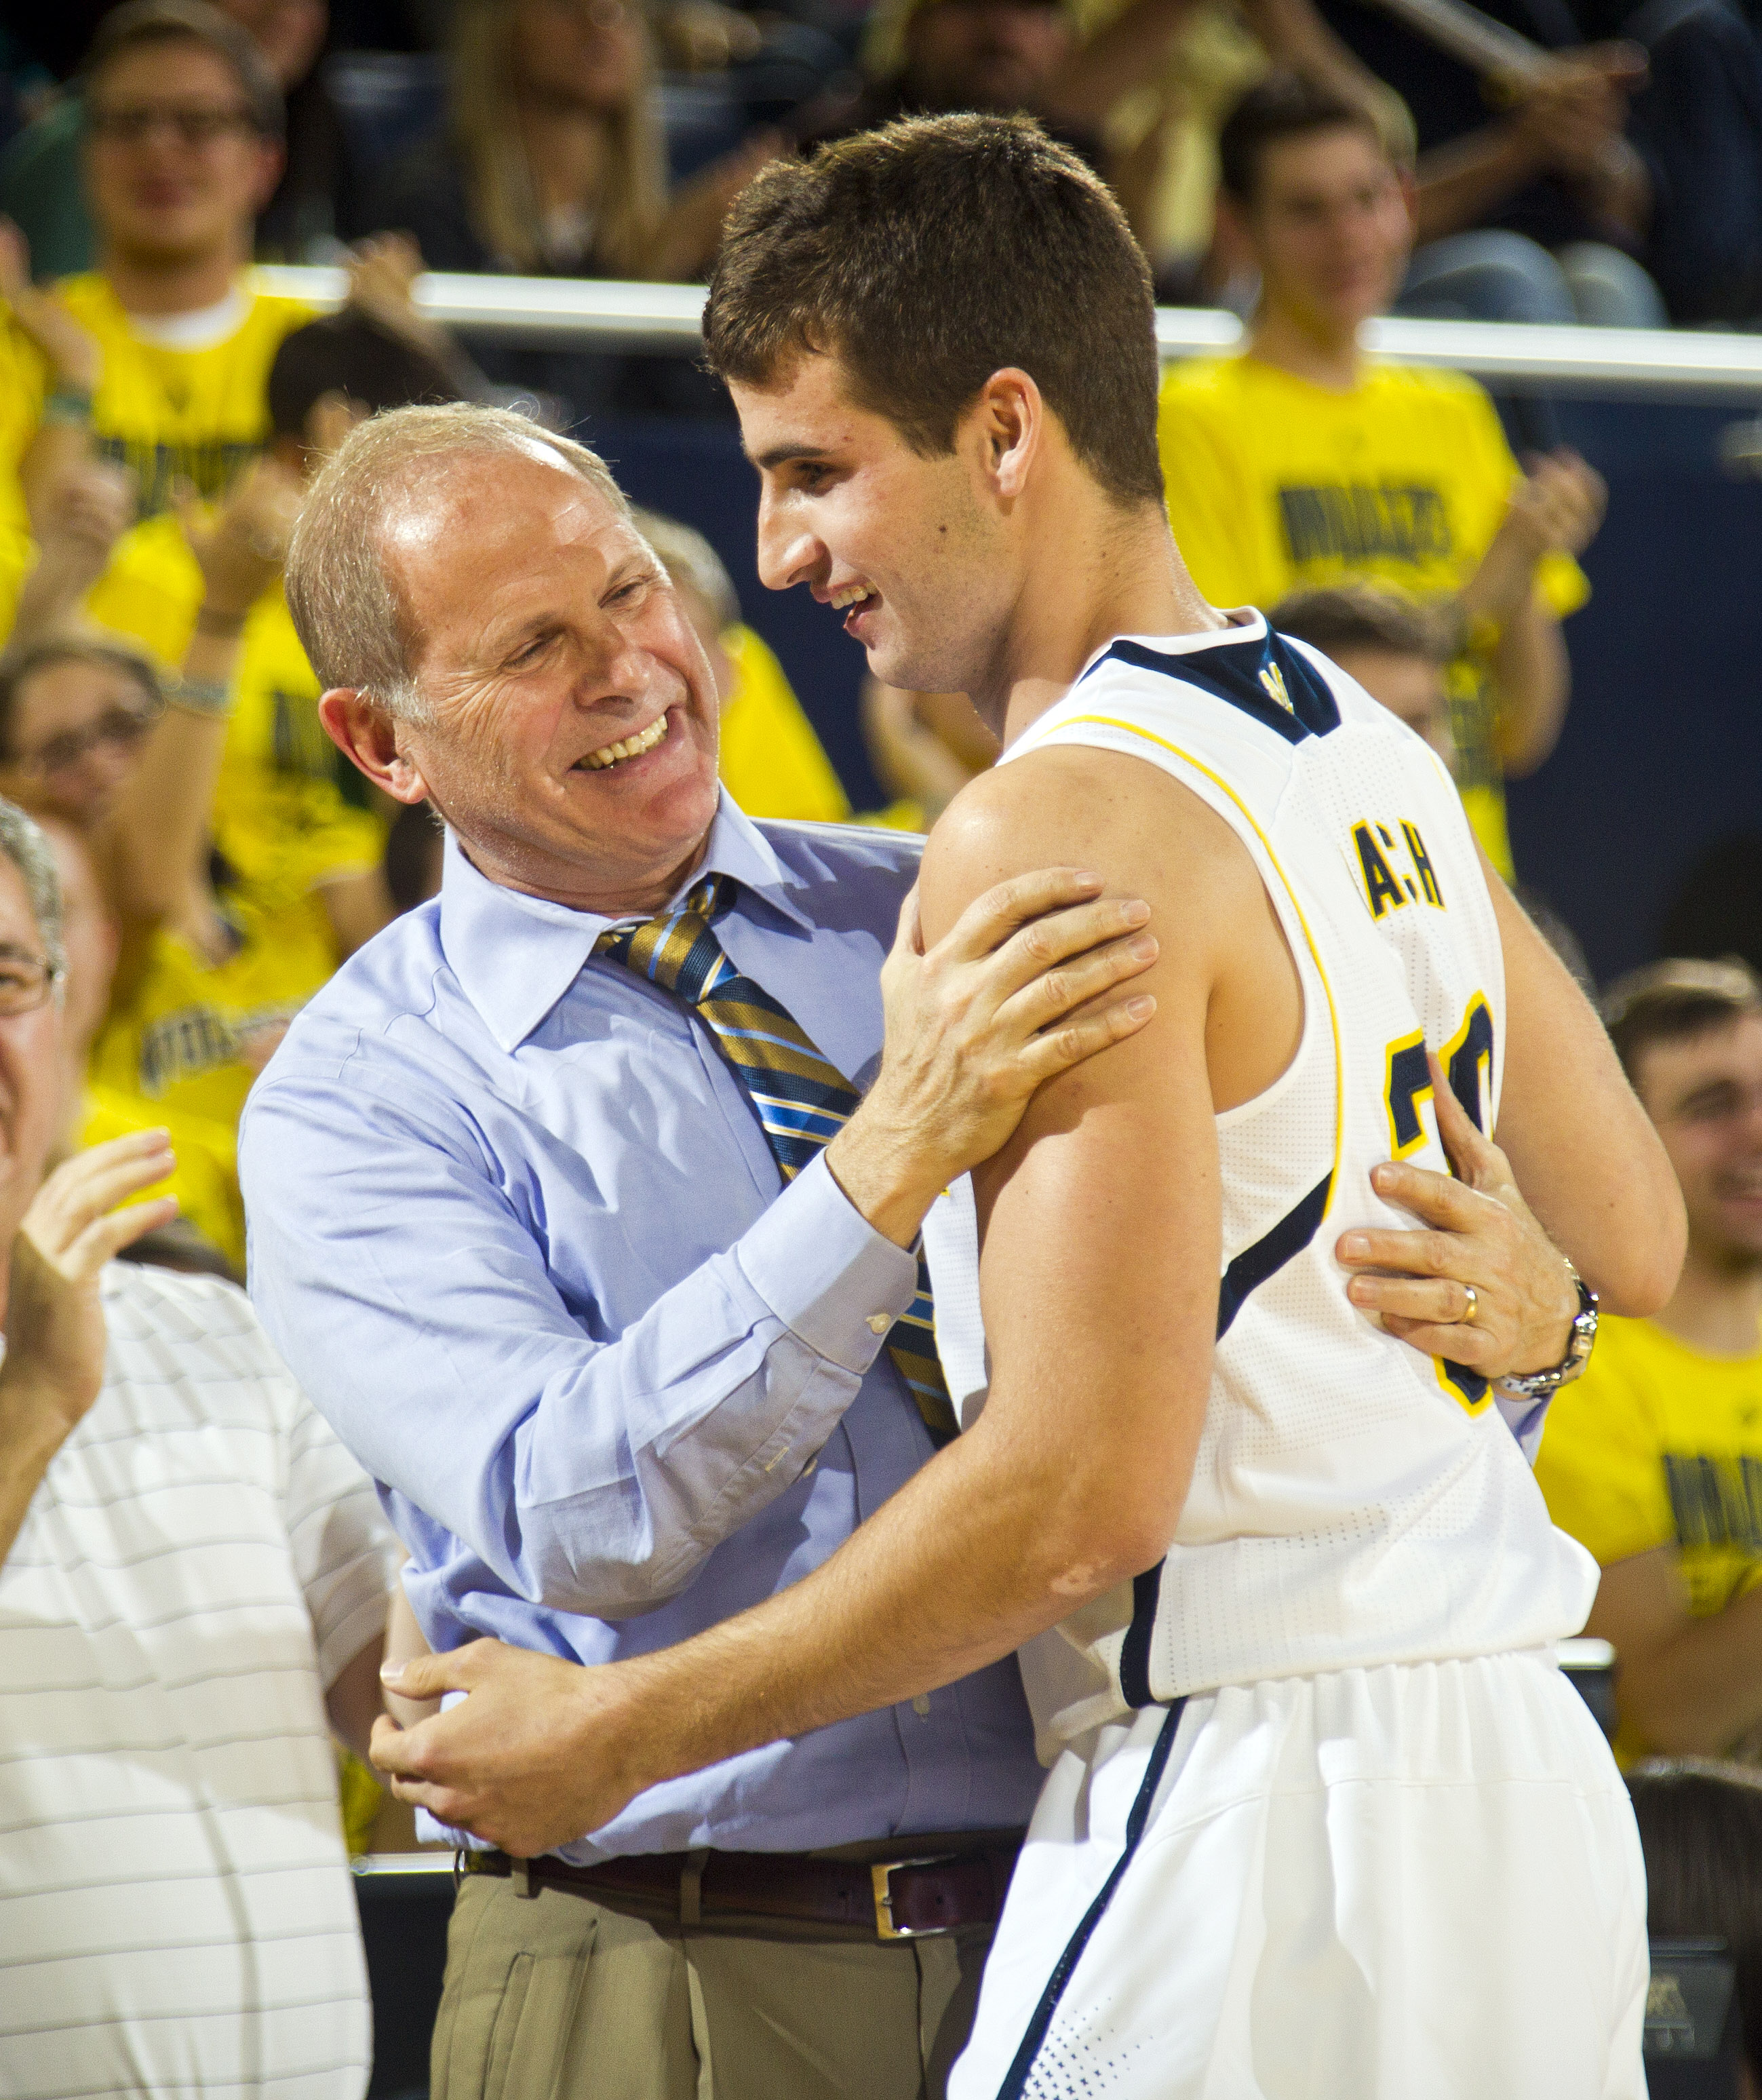 Michigan head coach John Beilein congratulates guard Austin Hatch after he made a free throw basket in the second half of an NCAA college basketball exhibition game against Wayne State at Crisler Center in Ann Arbor, Mich., Monday, Nov. 10, 2014. Michigan